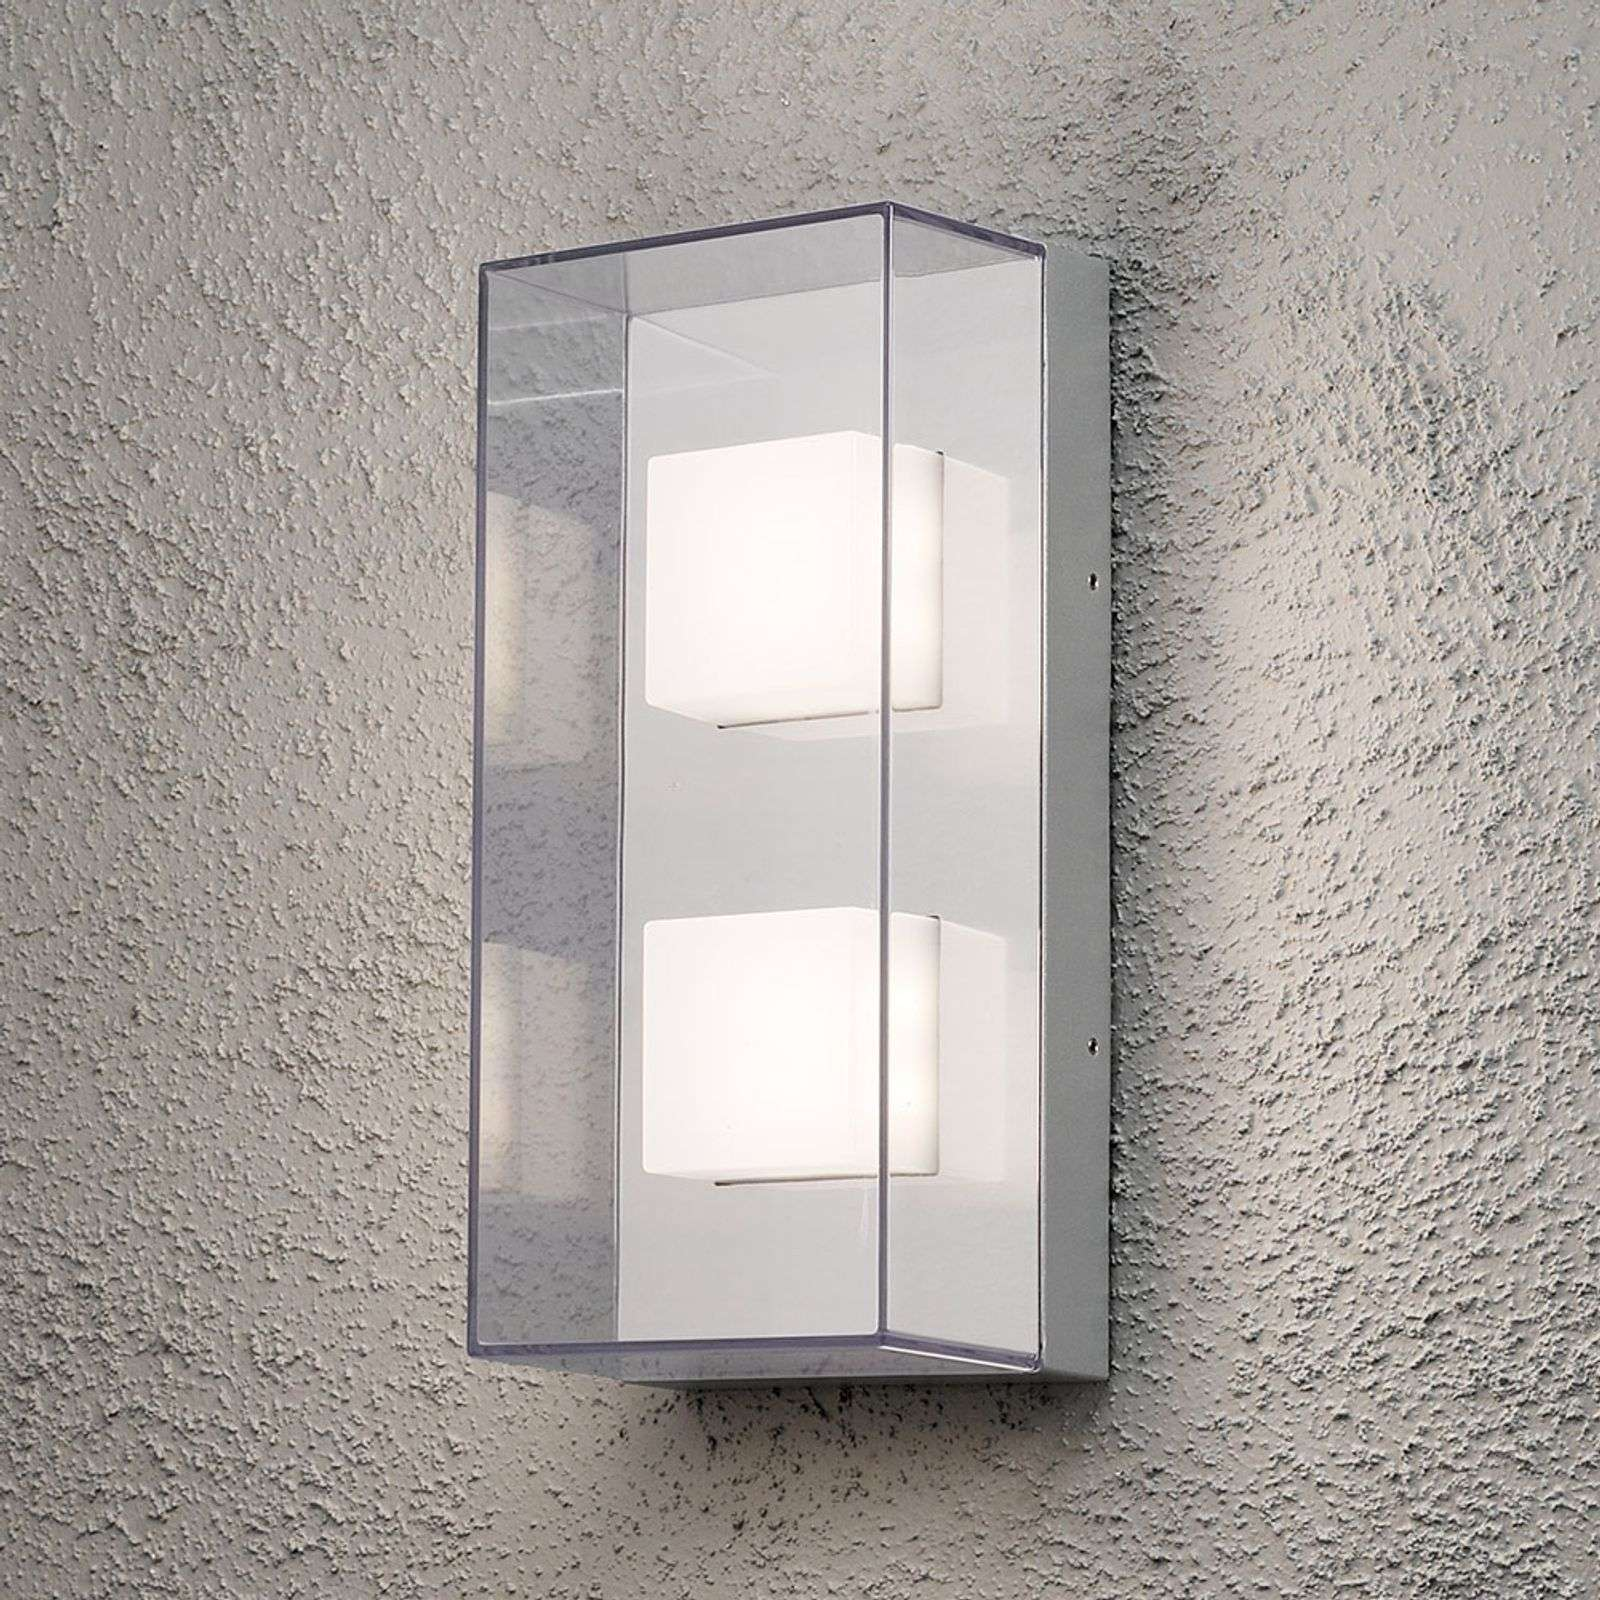 Aplique rectangular de pared exterior LED Sanremo